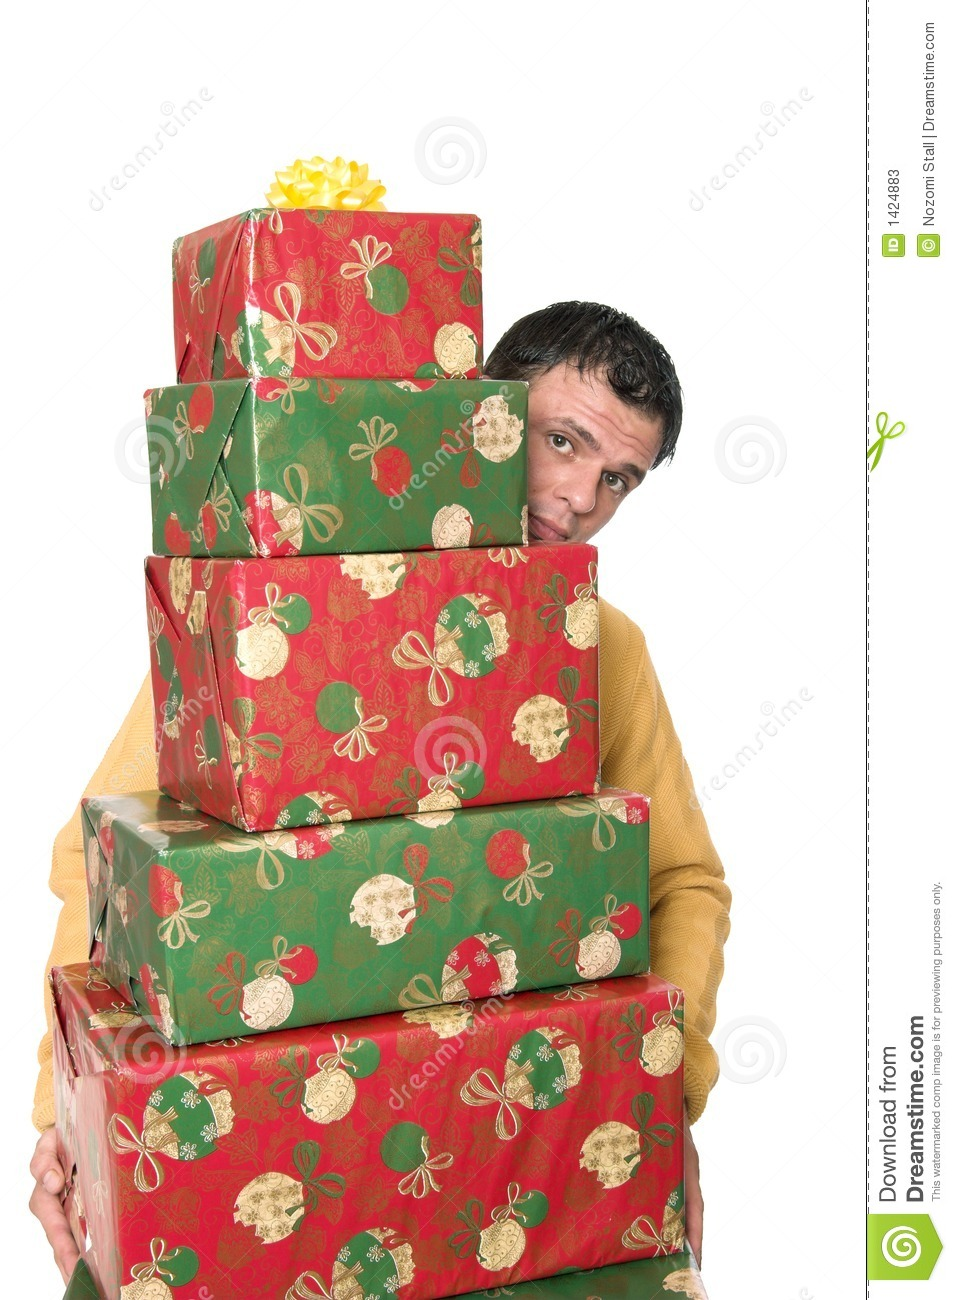 Huge stack of presents clipart suggest